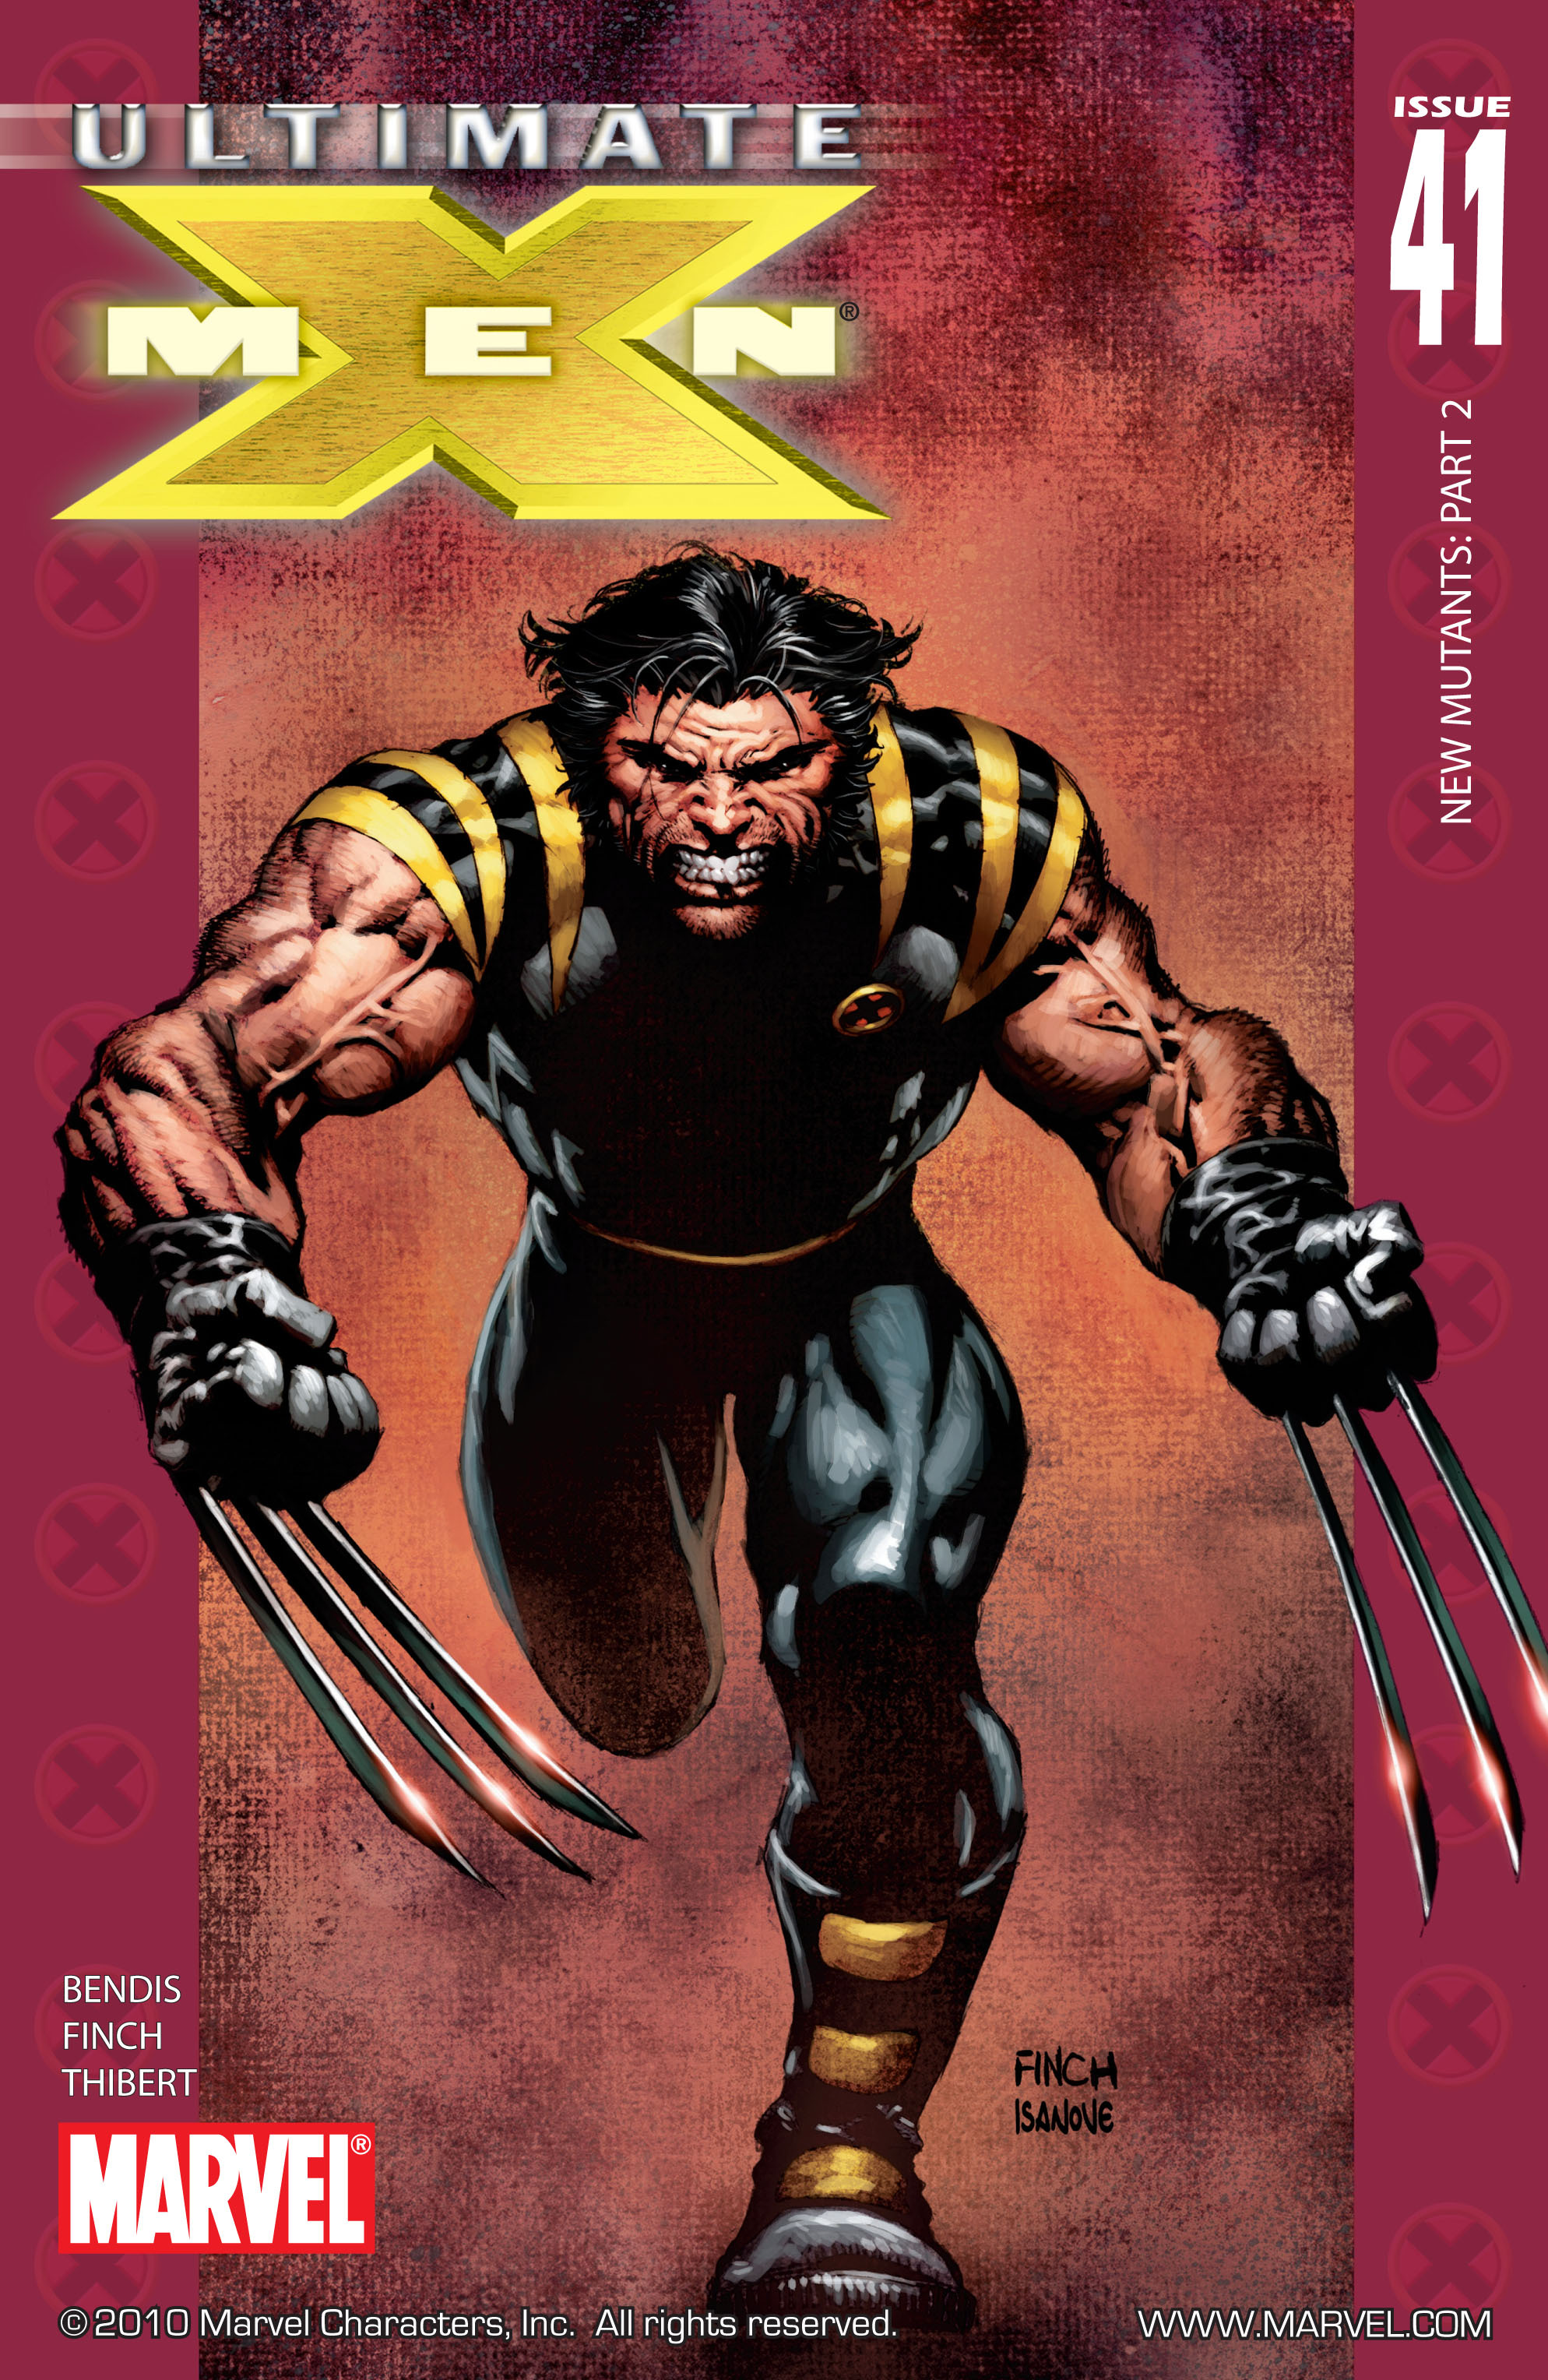 Read online Ultimate X-Men comic -  Issue #41 - 1